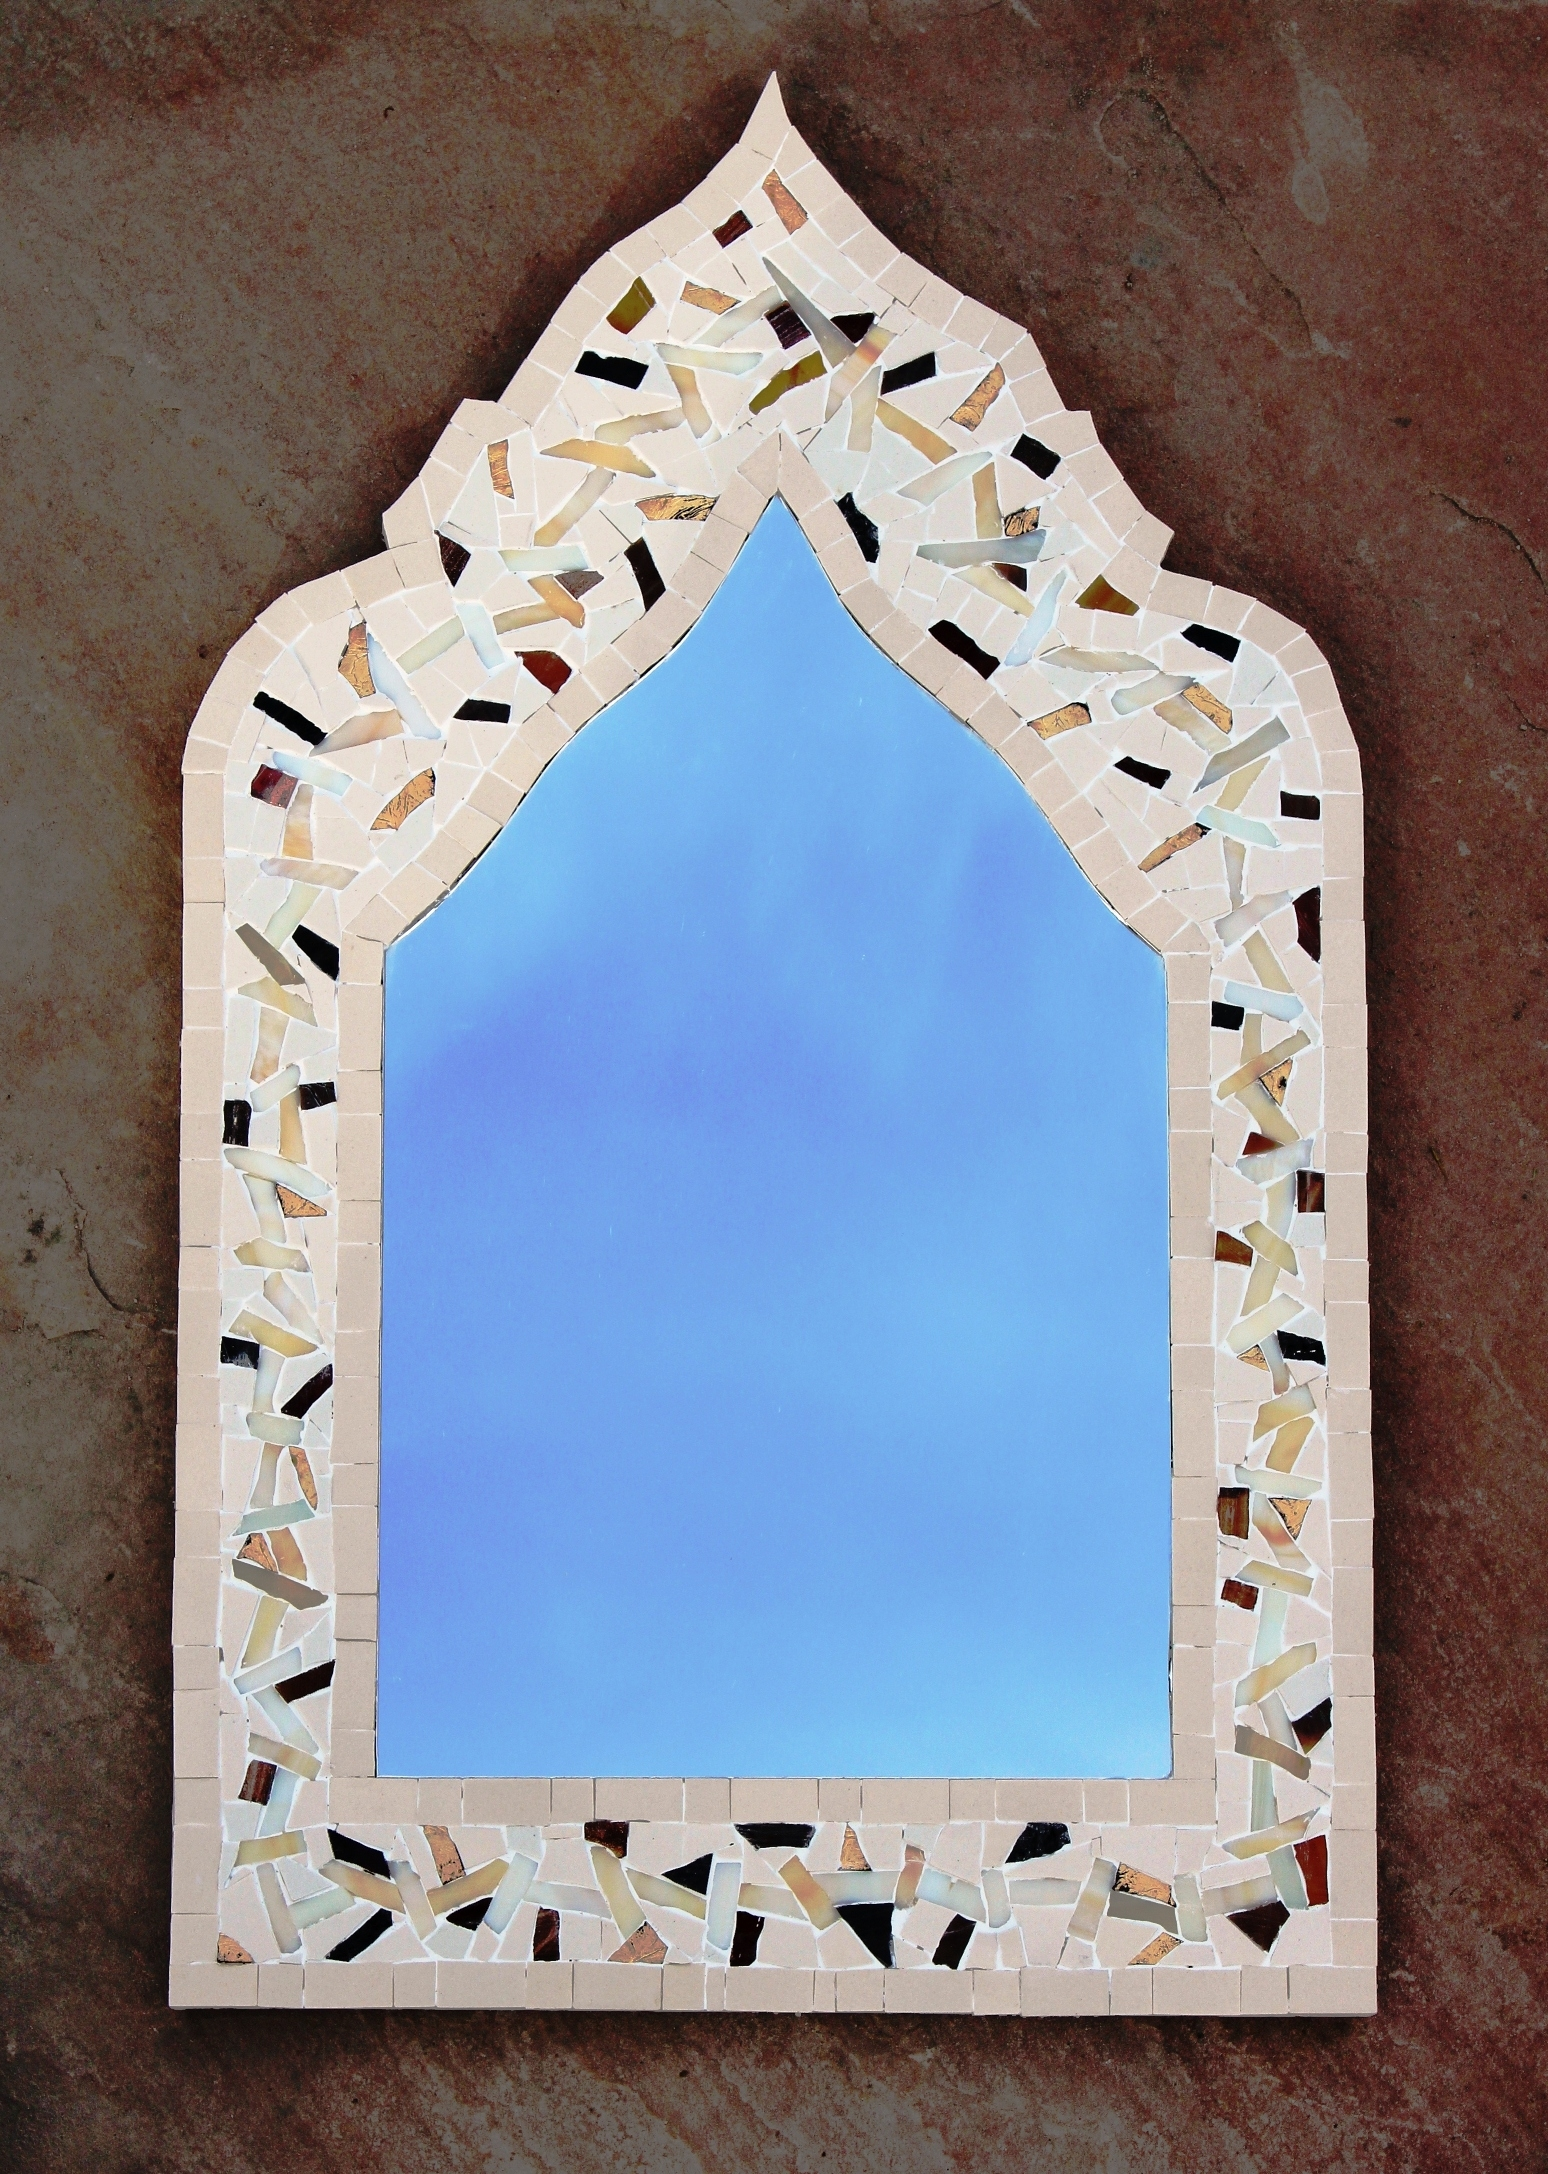 Arabic Mosaic Mirror Just Completed Sue Kershaw Mosaic Artist Throughout Mosaic Mirrors For Sale (Image 1 of 15)